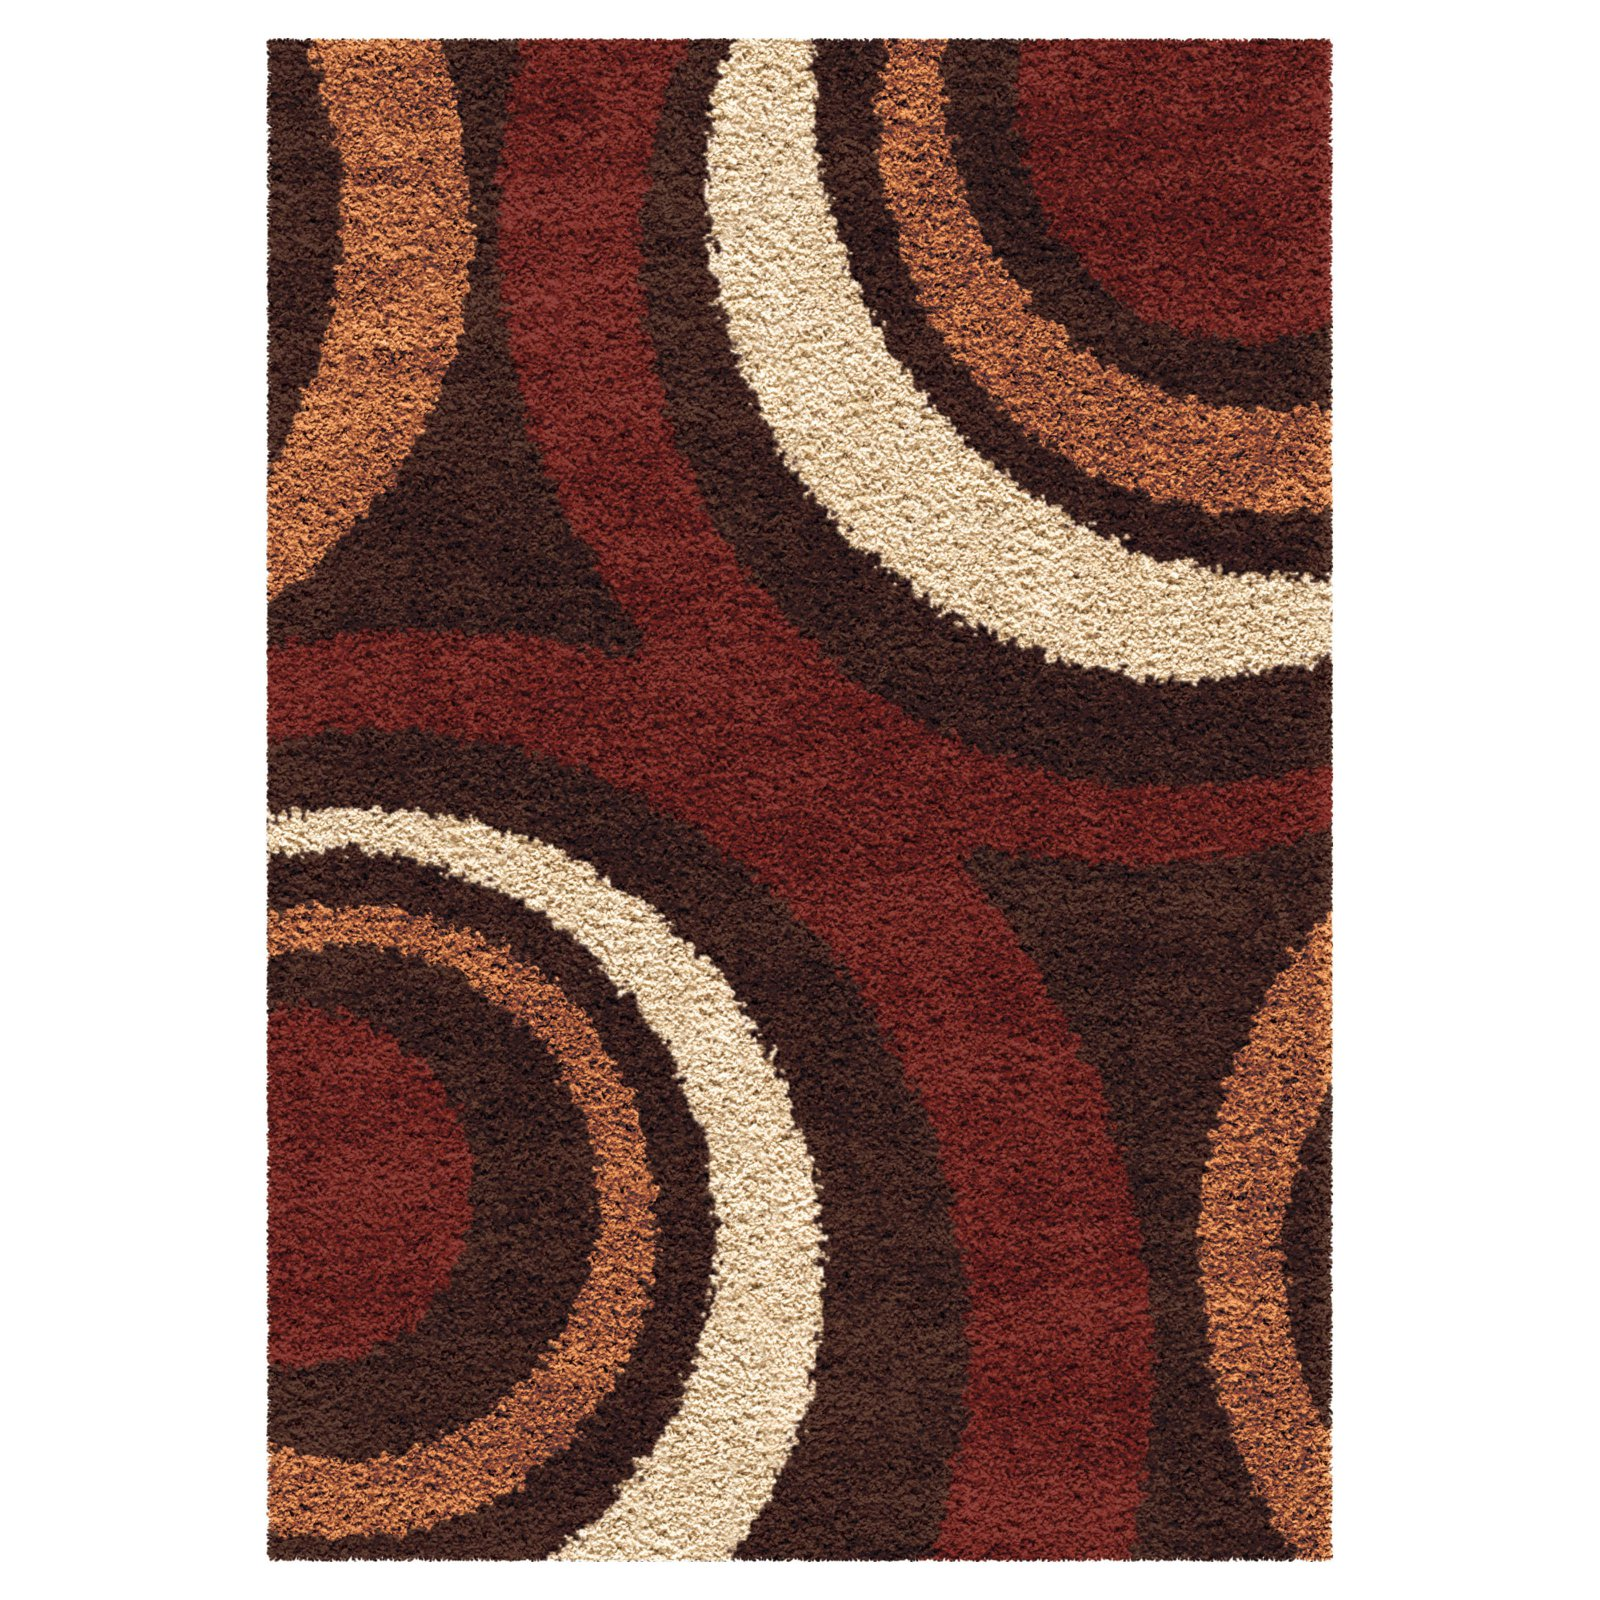 Orian Rugs Circles Fire Hole Shag Area Rug